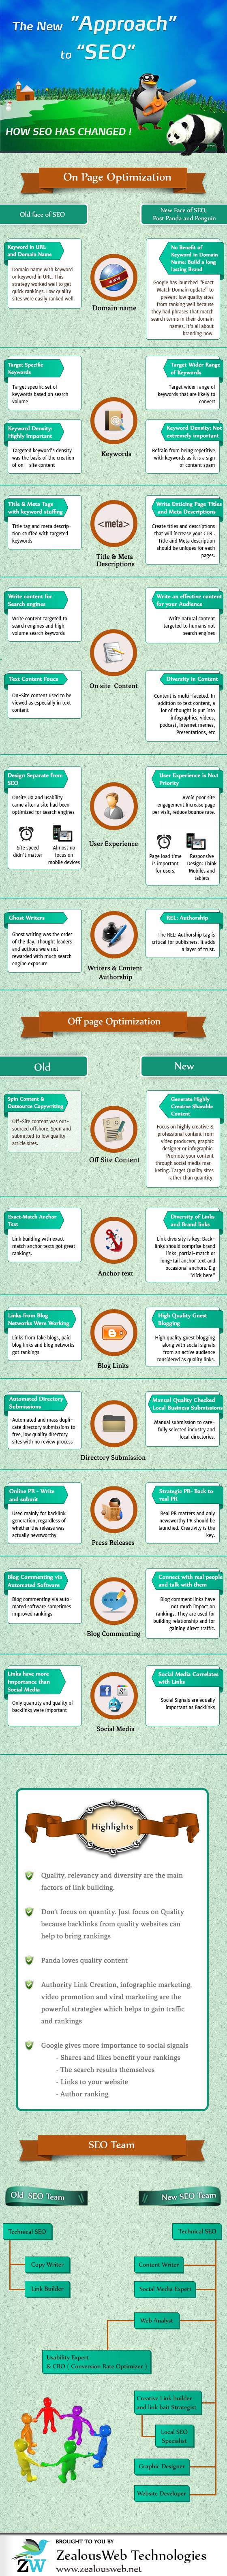 Dressed for SEO Success-Infographic